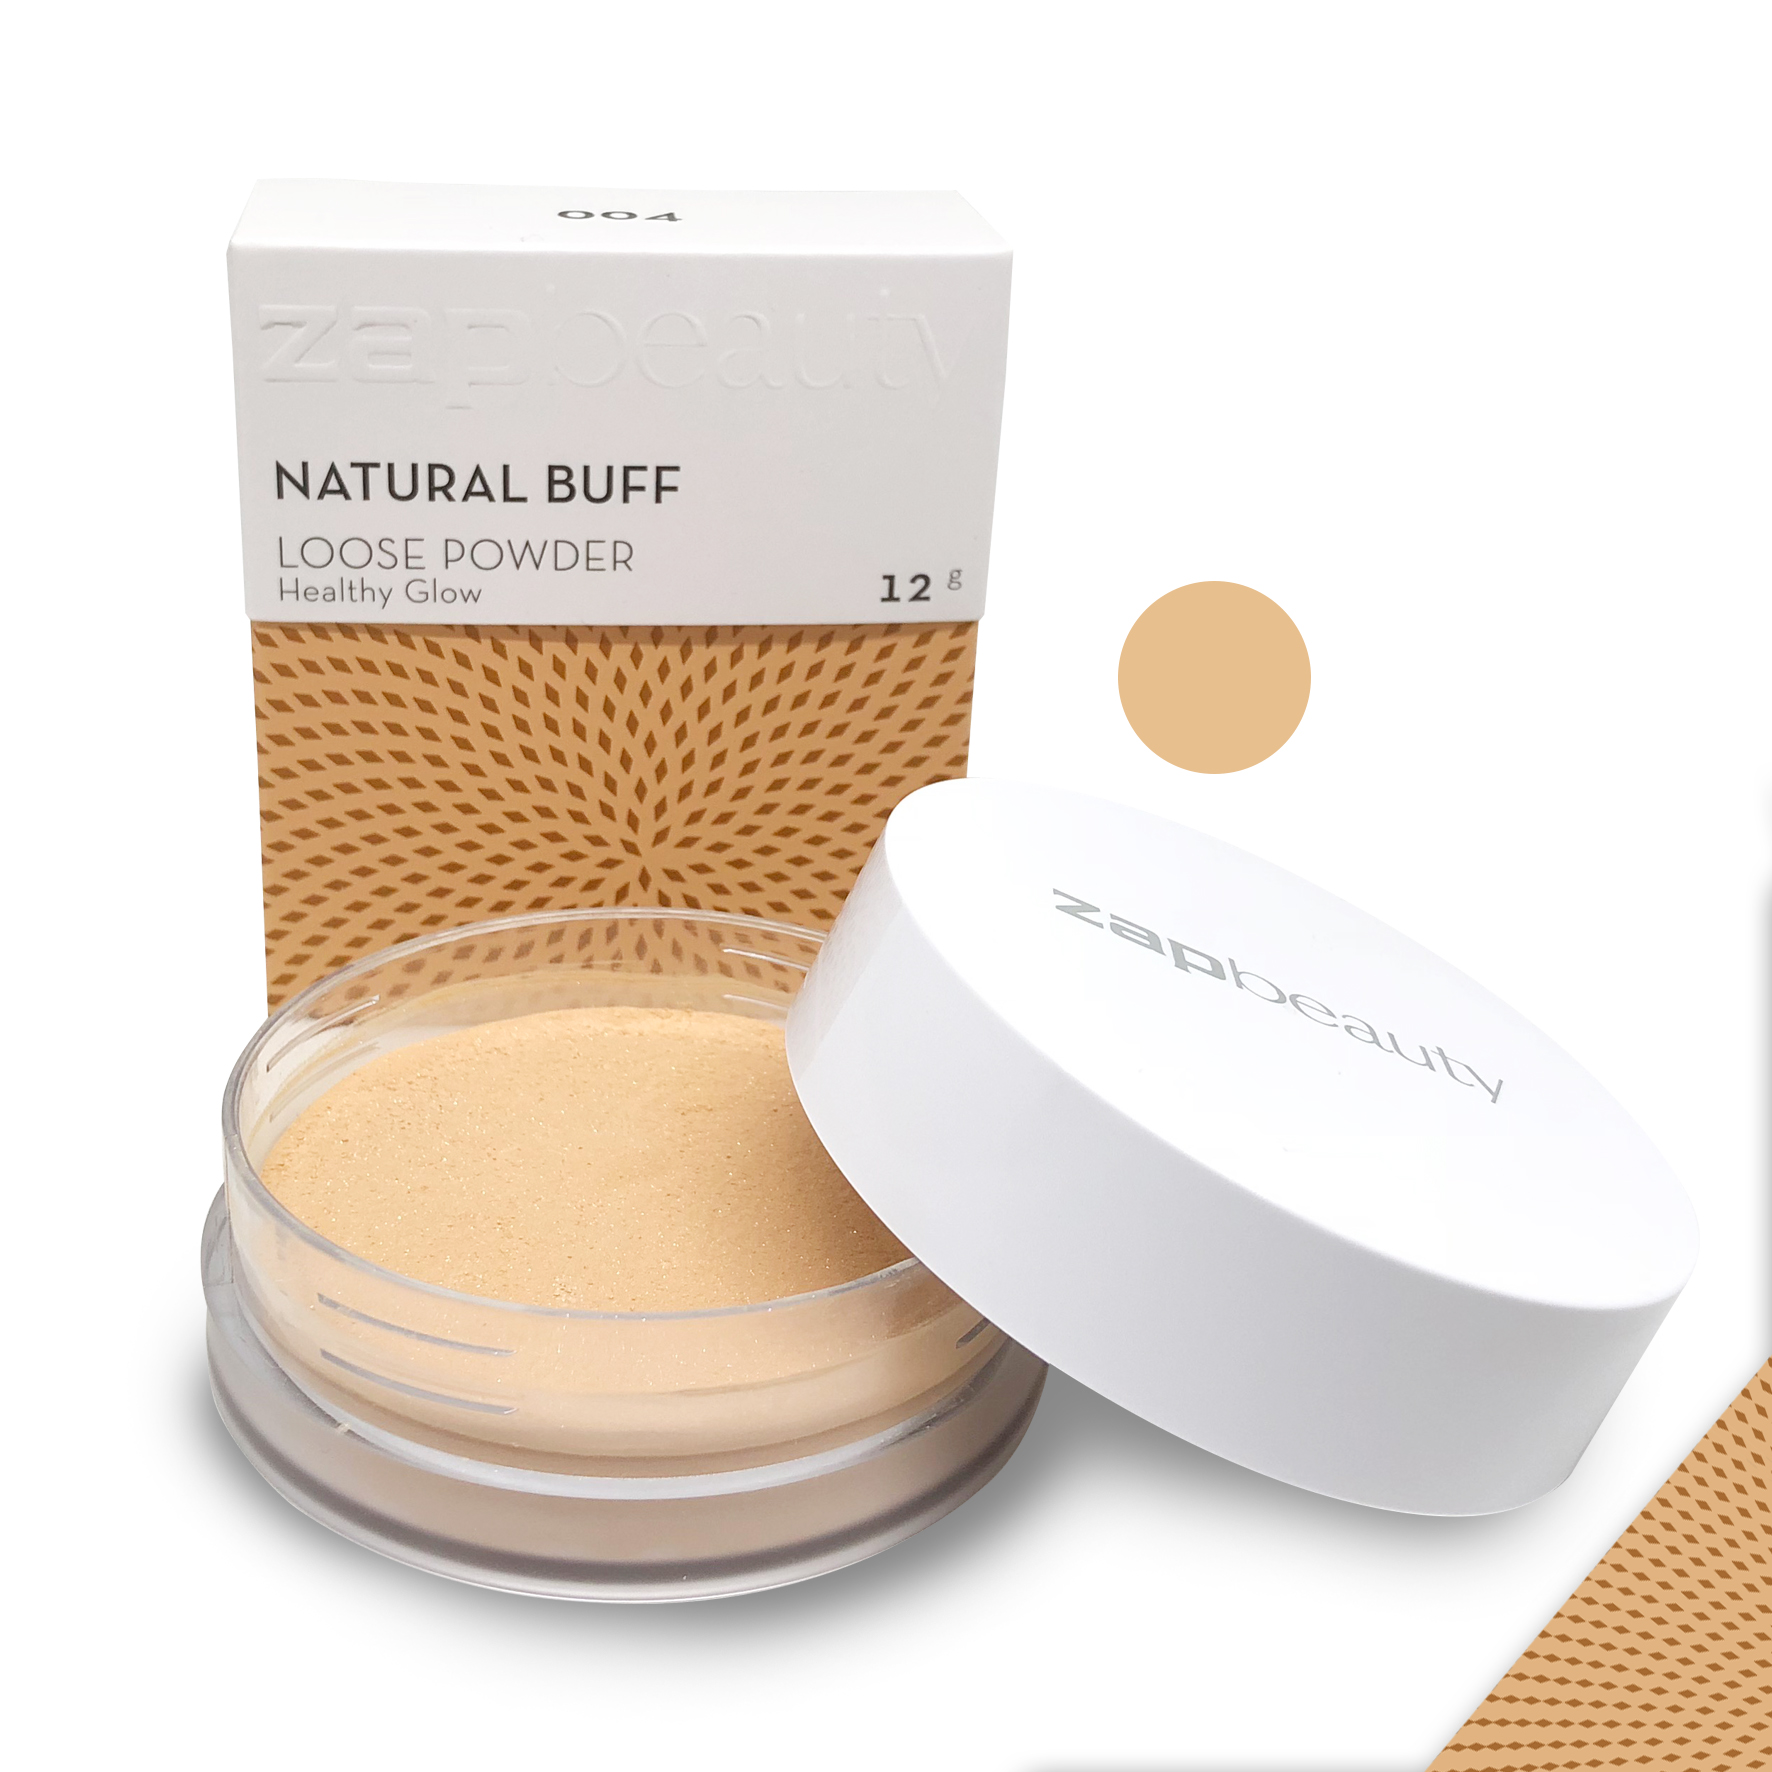 004 Natural Buff - Healthy Glow